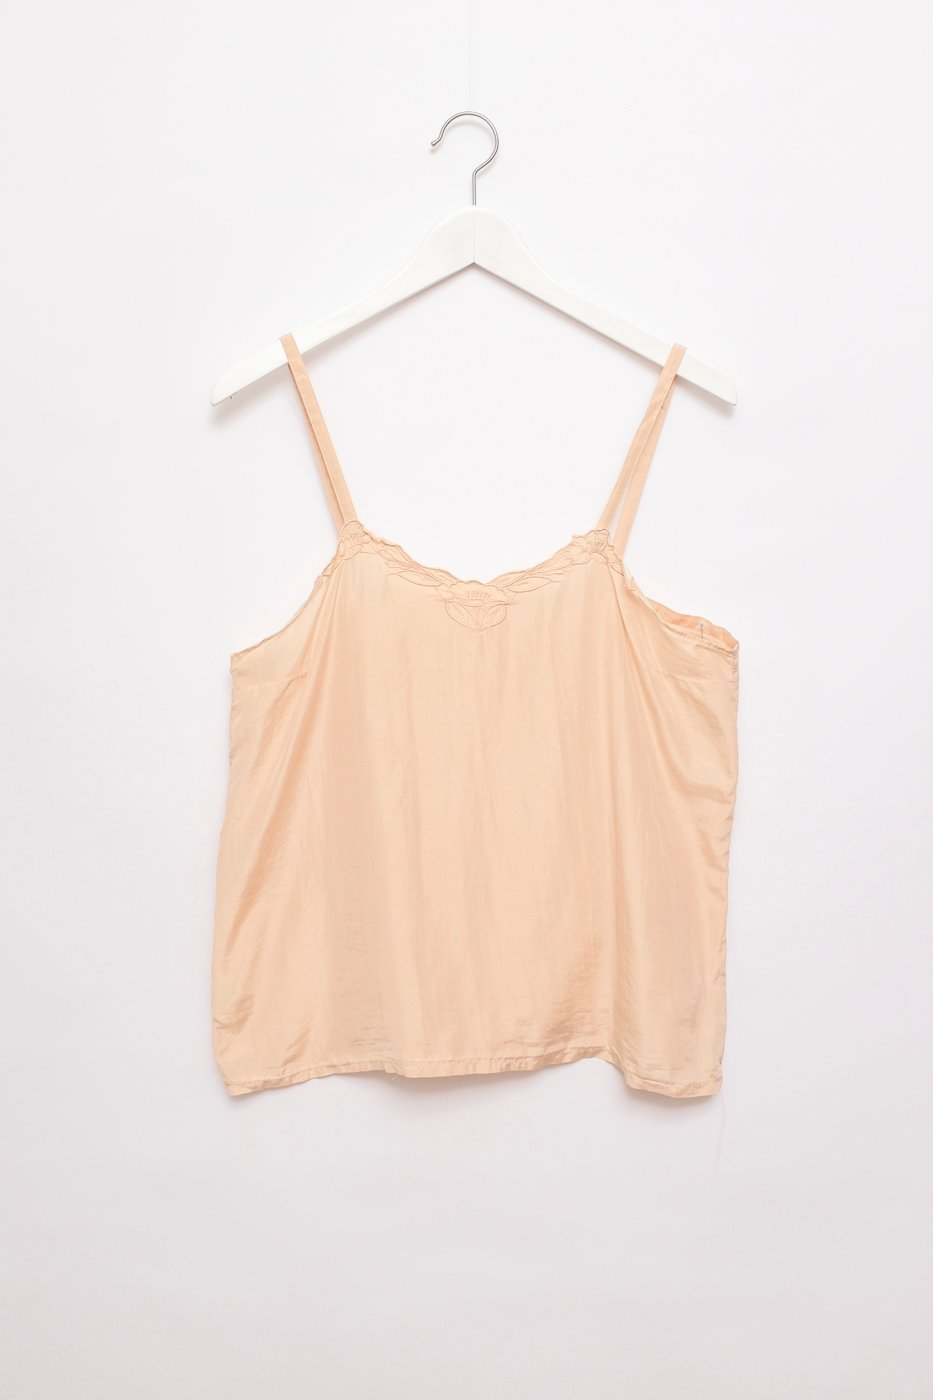 0431_PALE SALMON SILK VINTAGE TOP